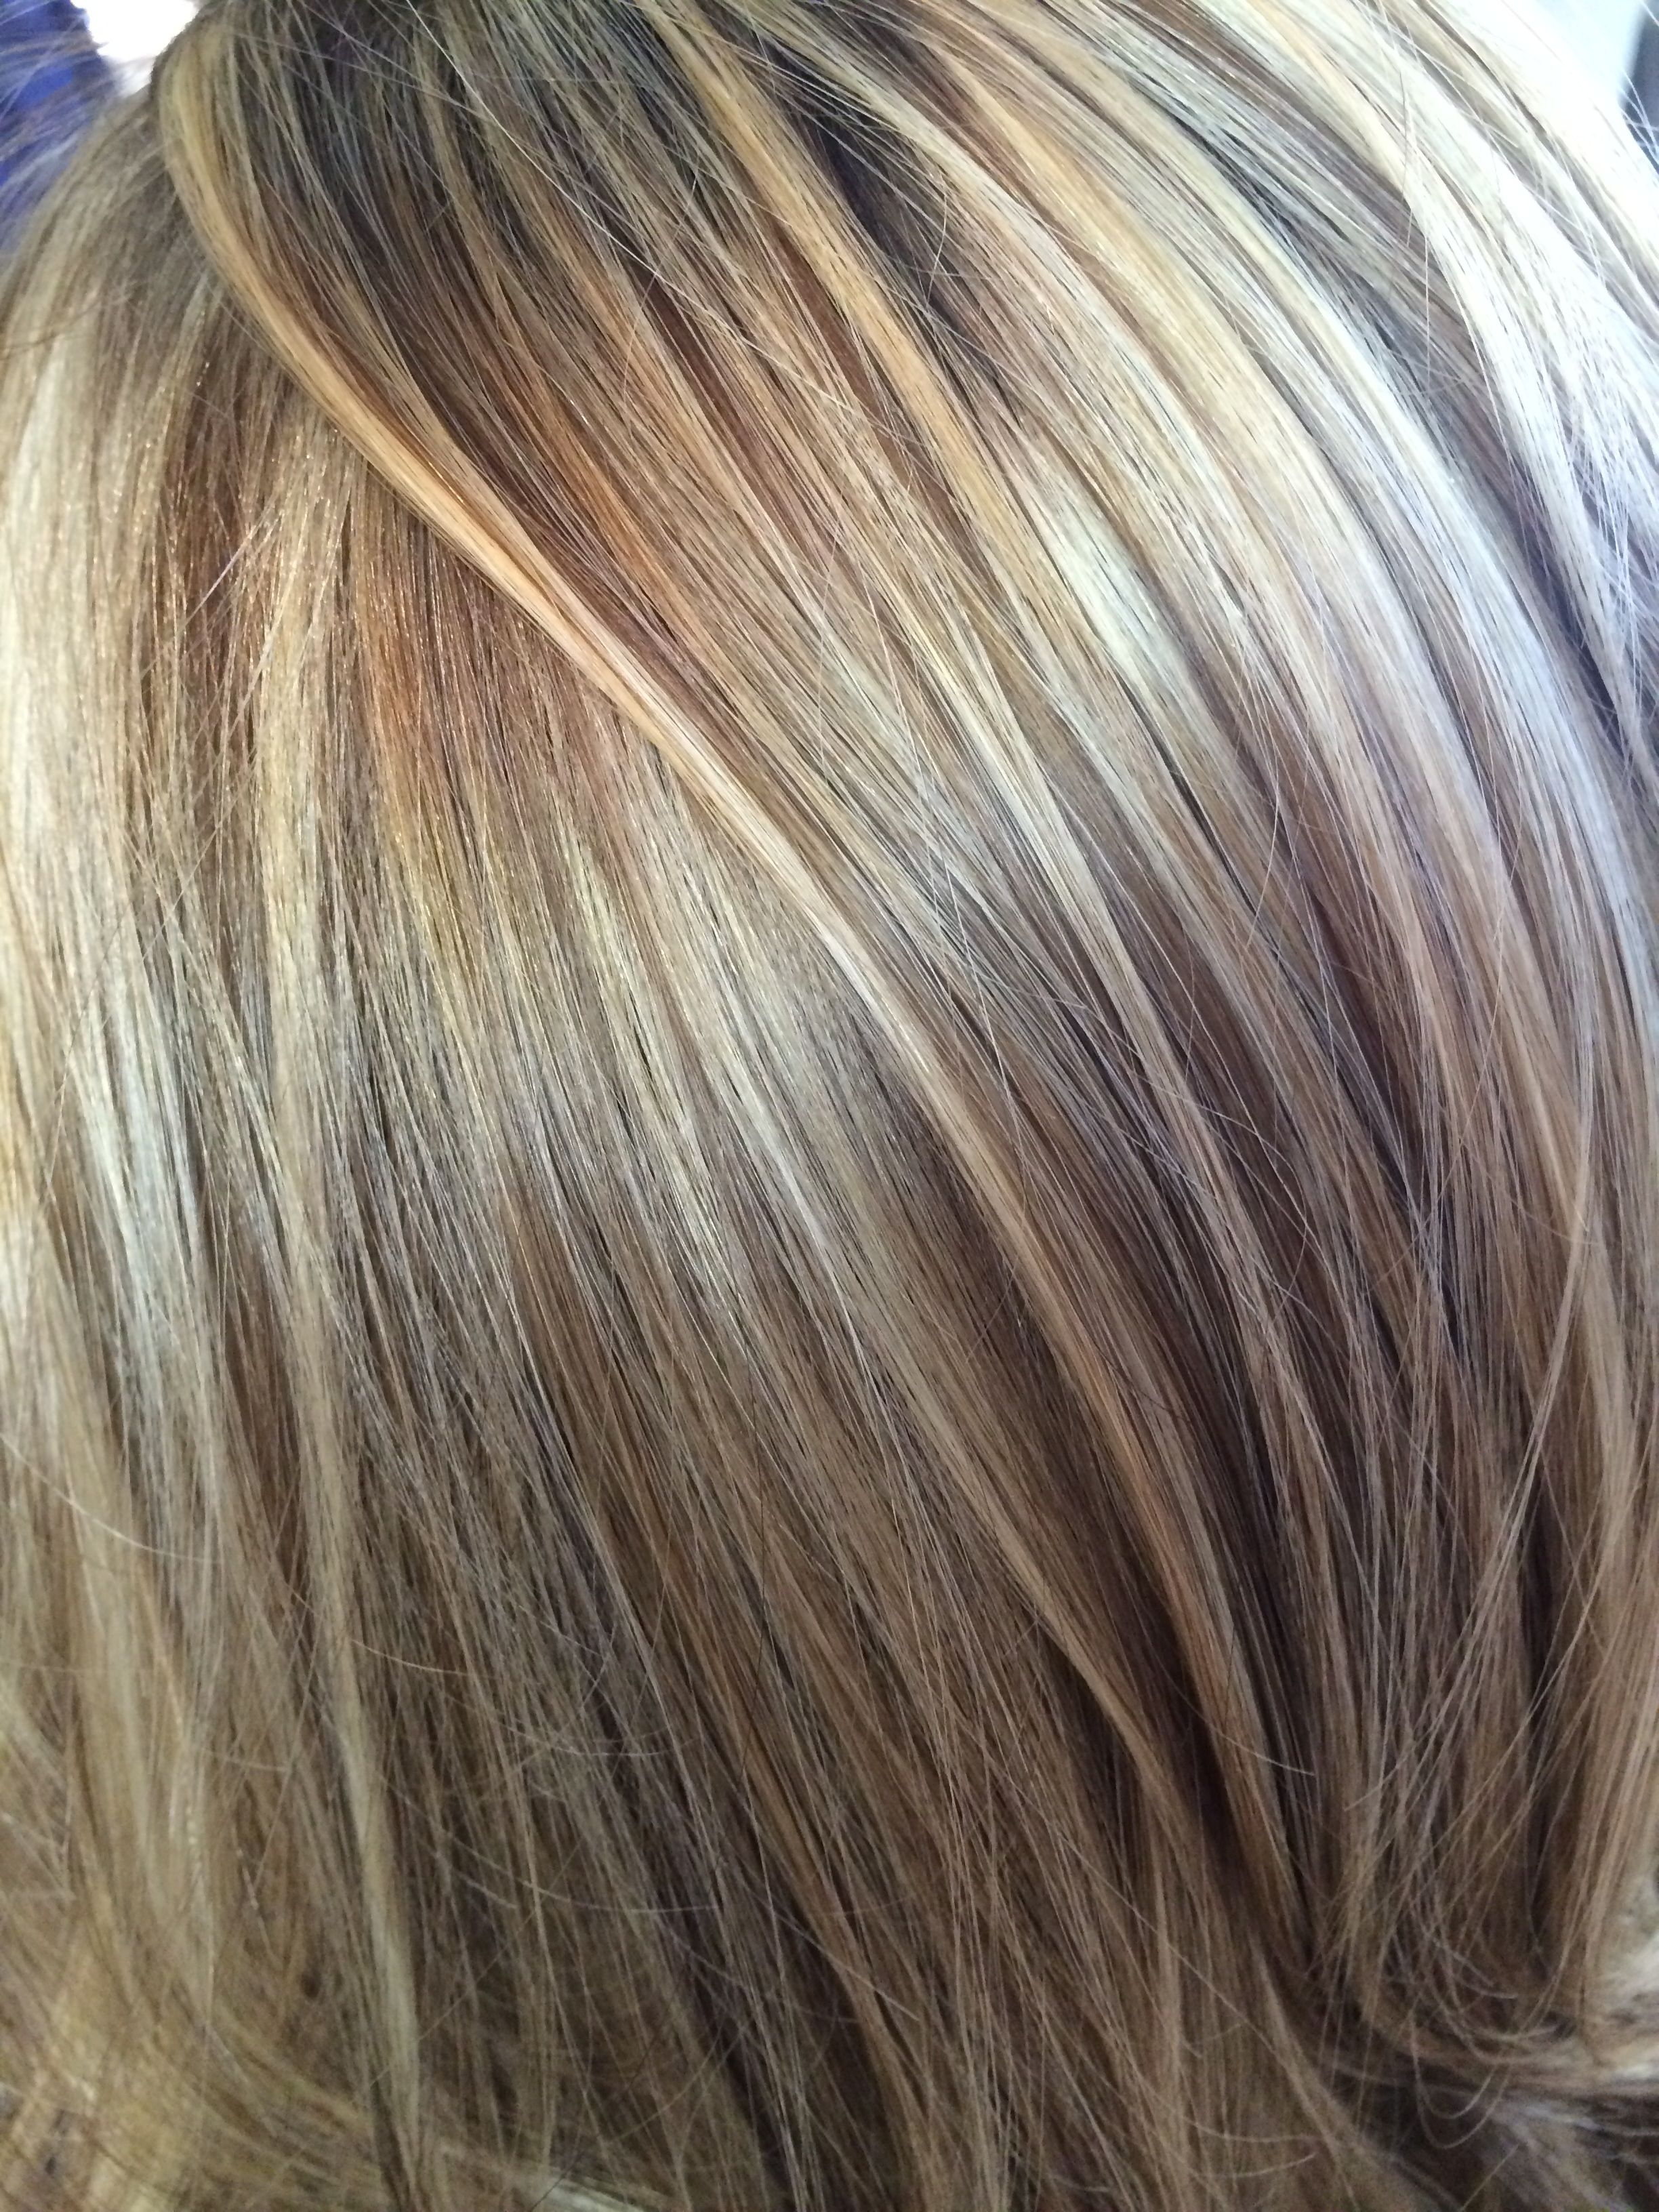 Fashionable Multi Tonal Mid Length Blonde Hairstyles With Close Up Multi Tonal Blonde (View 13 of 20)